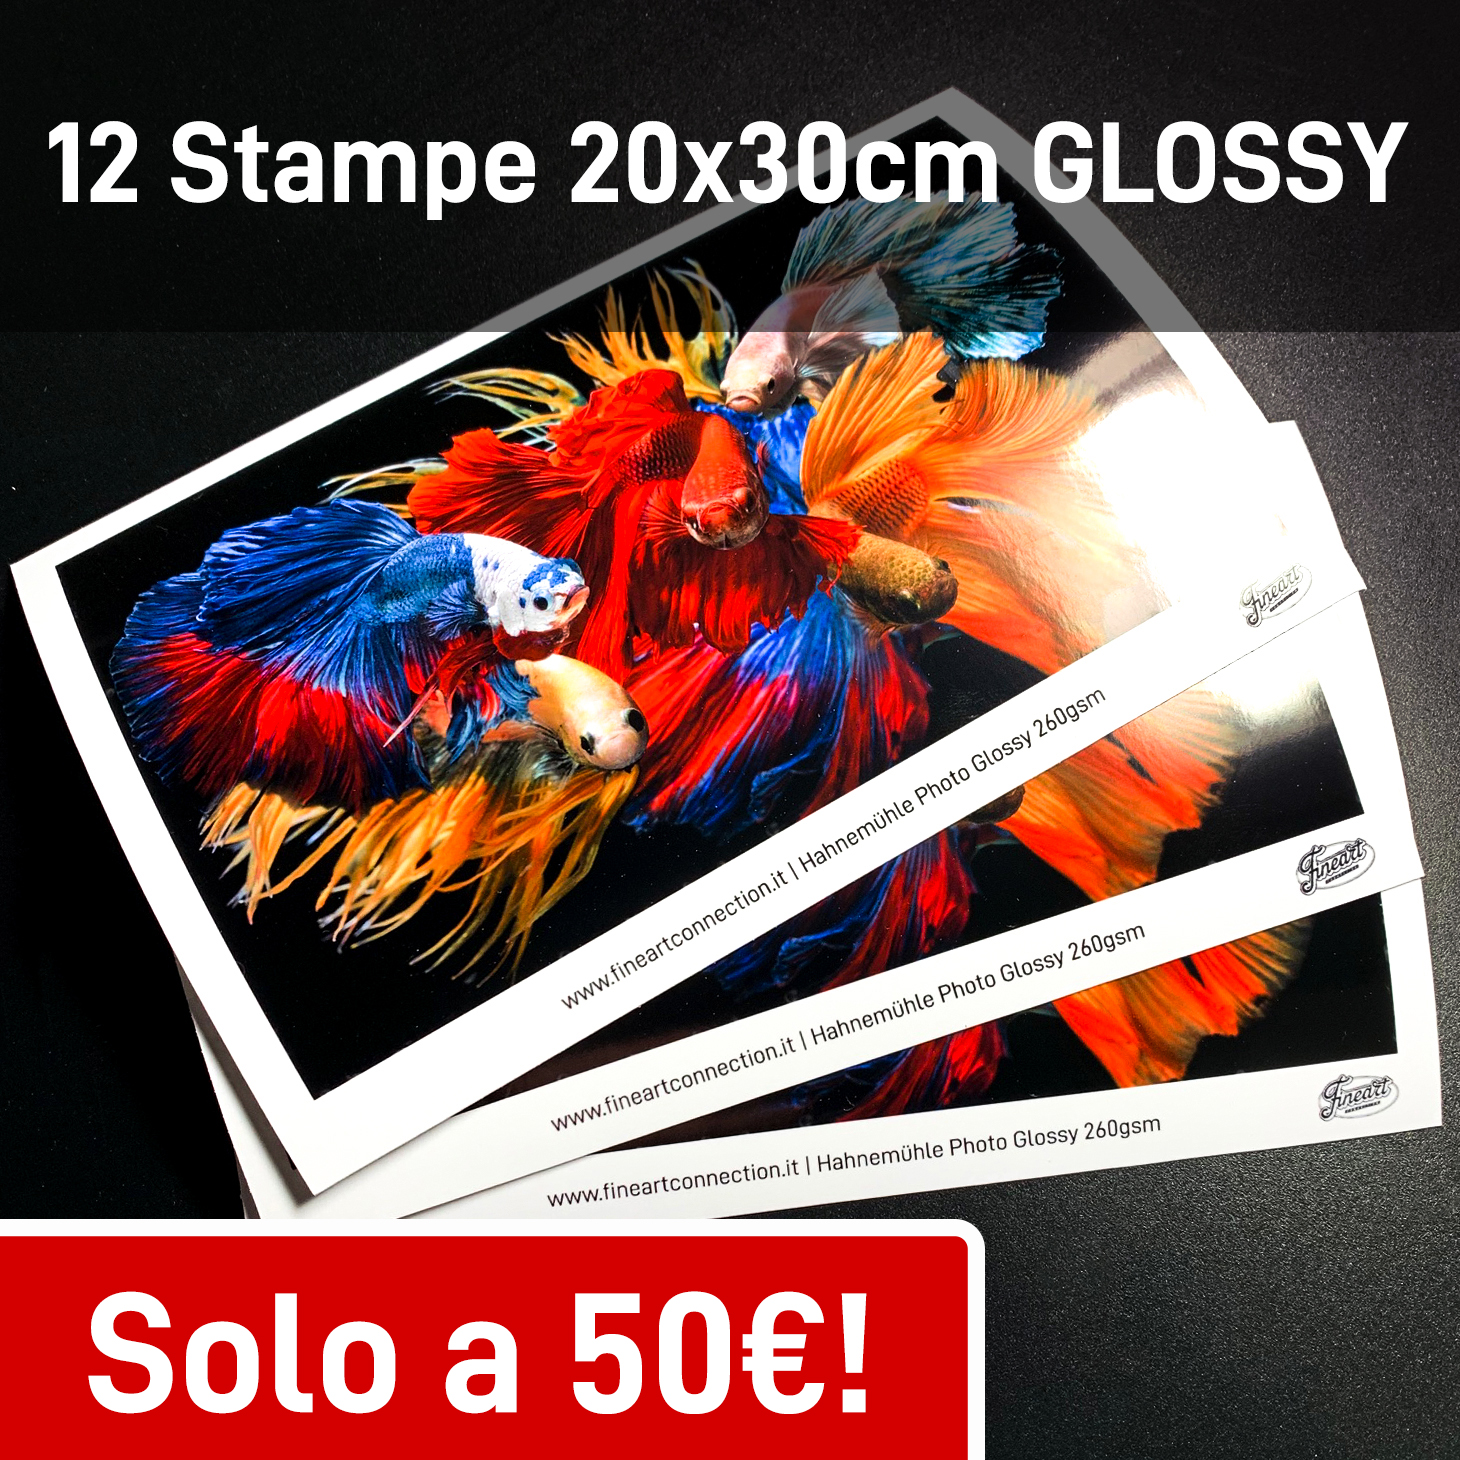 12 stampe 20x30cm Hahnemuhle Glossy 260gsm